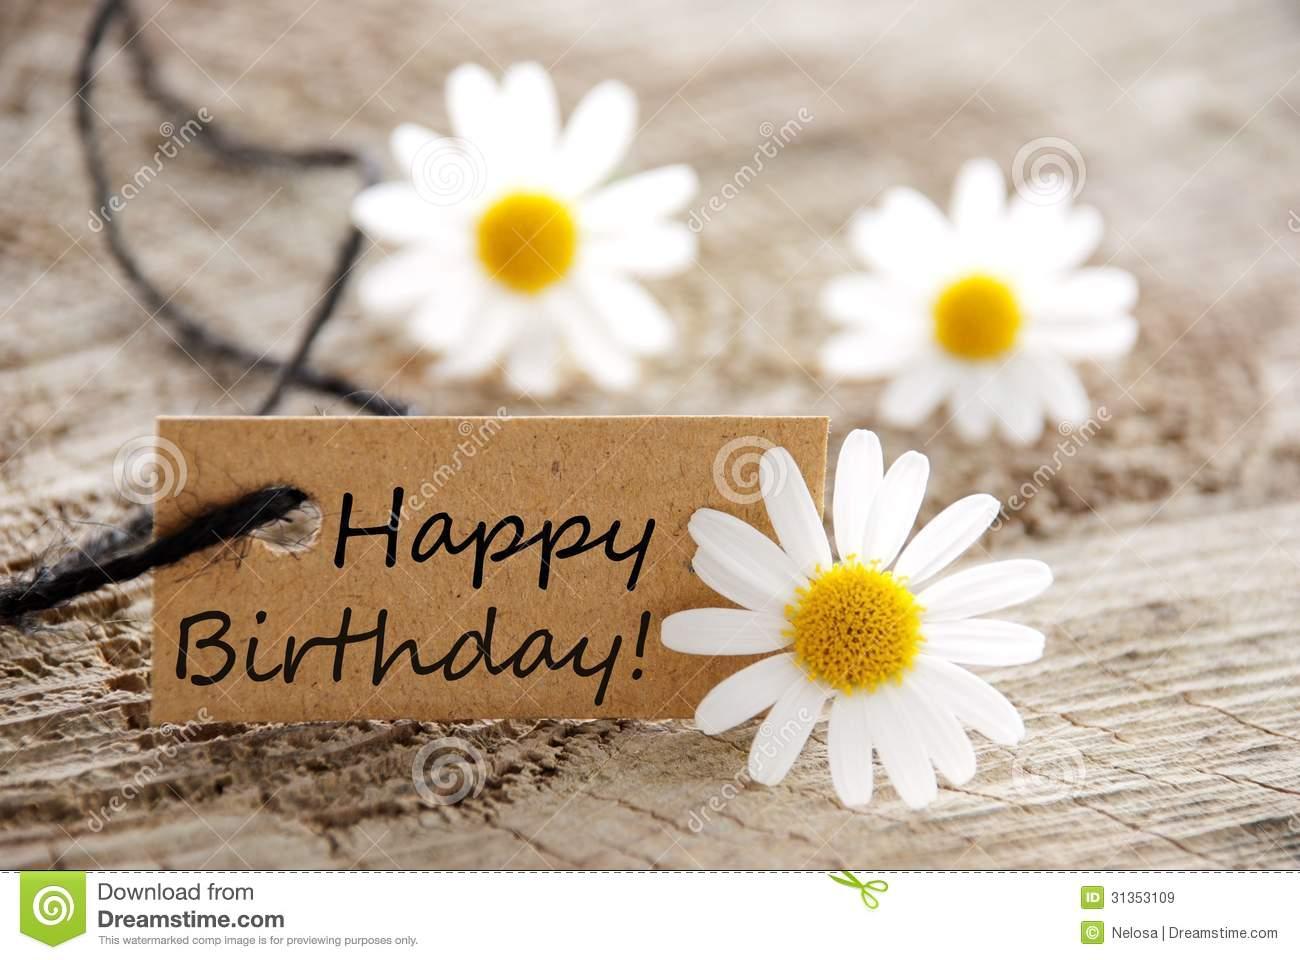 happy birthday nature images Happy birthday stock image. Image of celebrate, design   31353109 happy birthday nature images